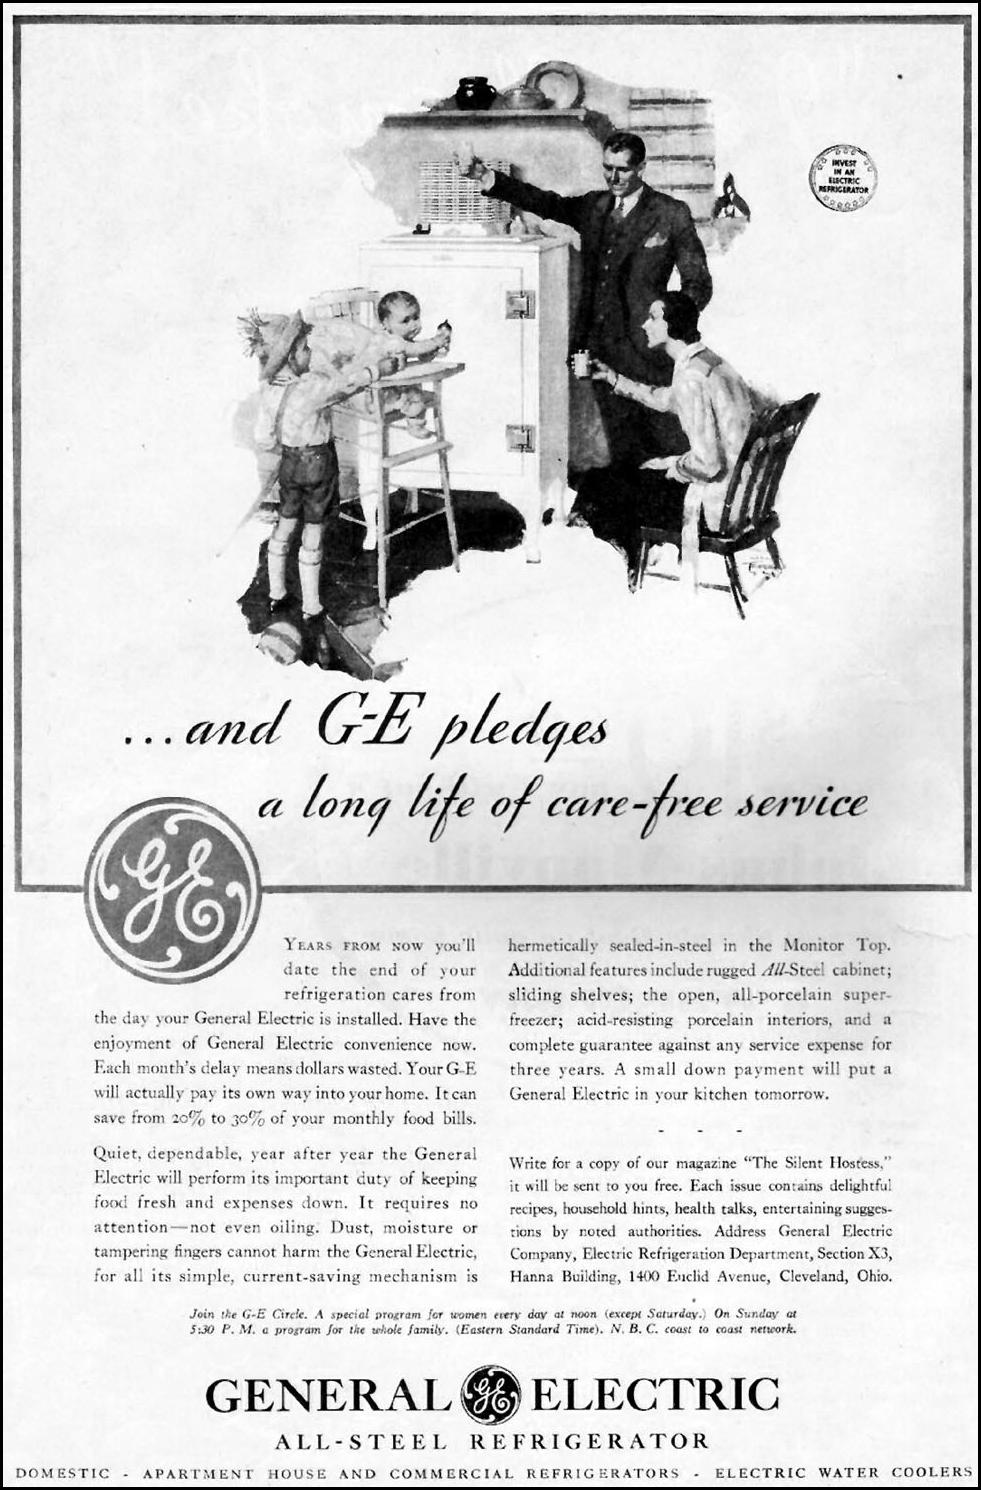 GENERAL ELECTRIC ALL-STEEL REFRIGERATORS BETTER HOMES AND GARDENS 03/01/1932 p. 6